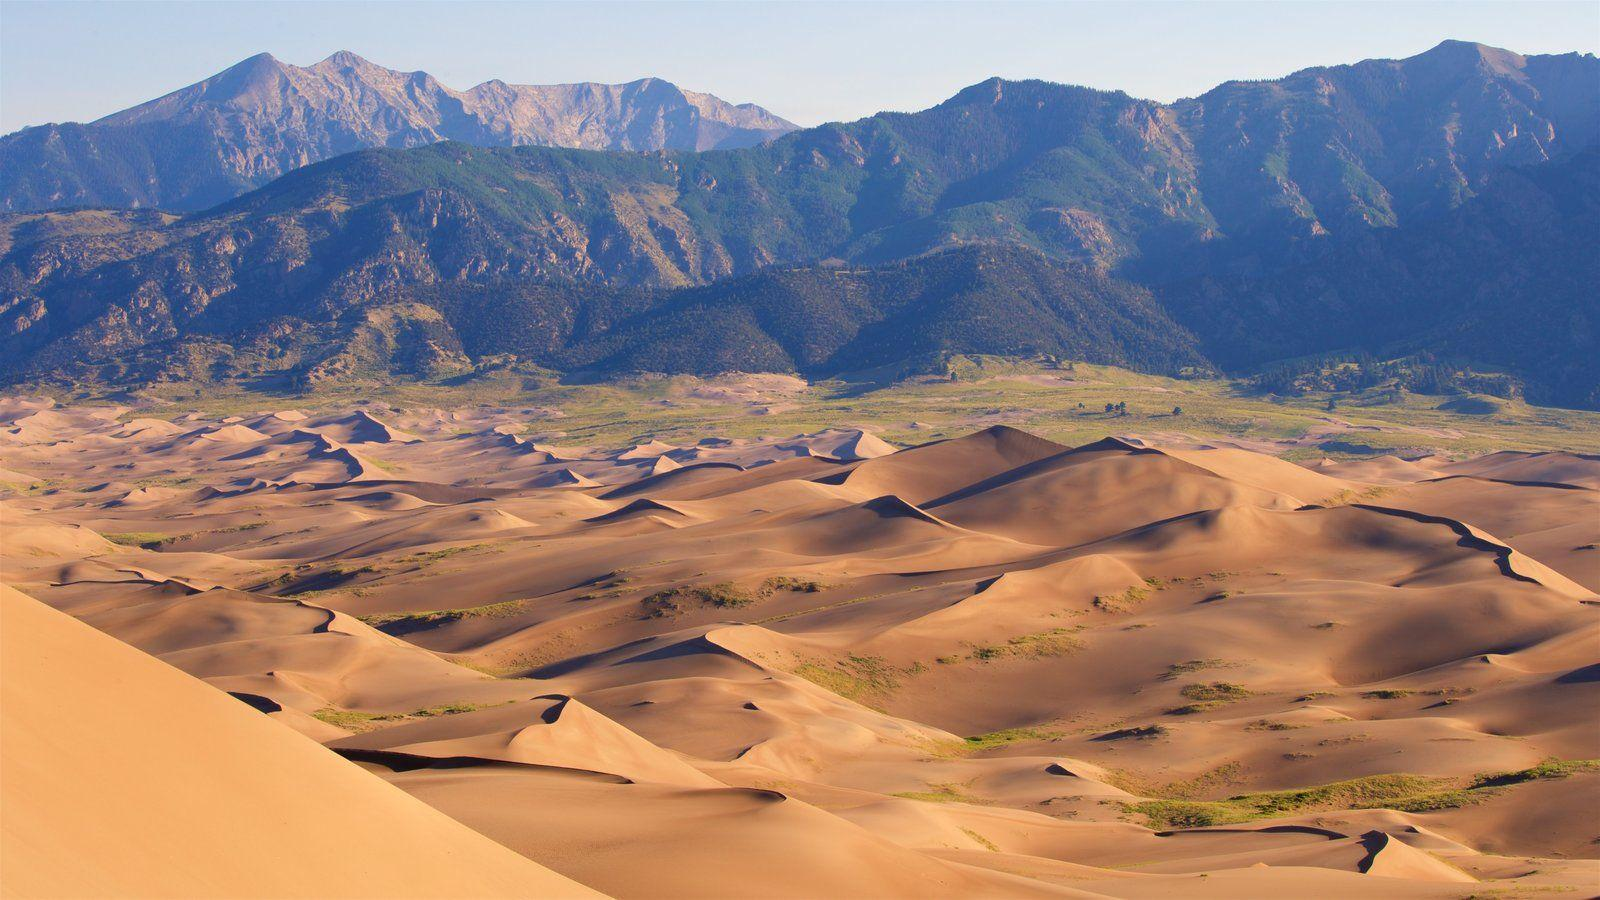 Mountain Pictures: View Image of Great Sand Dunes National Park